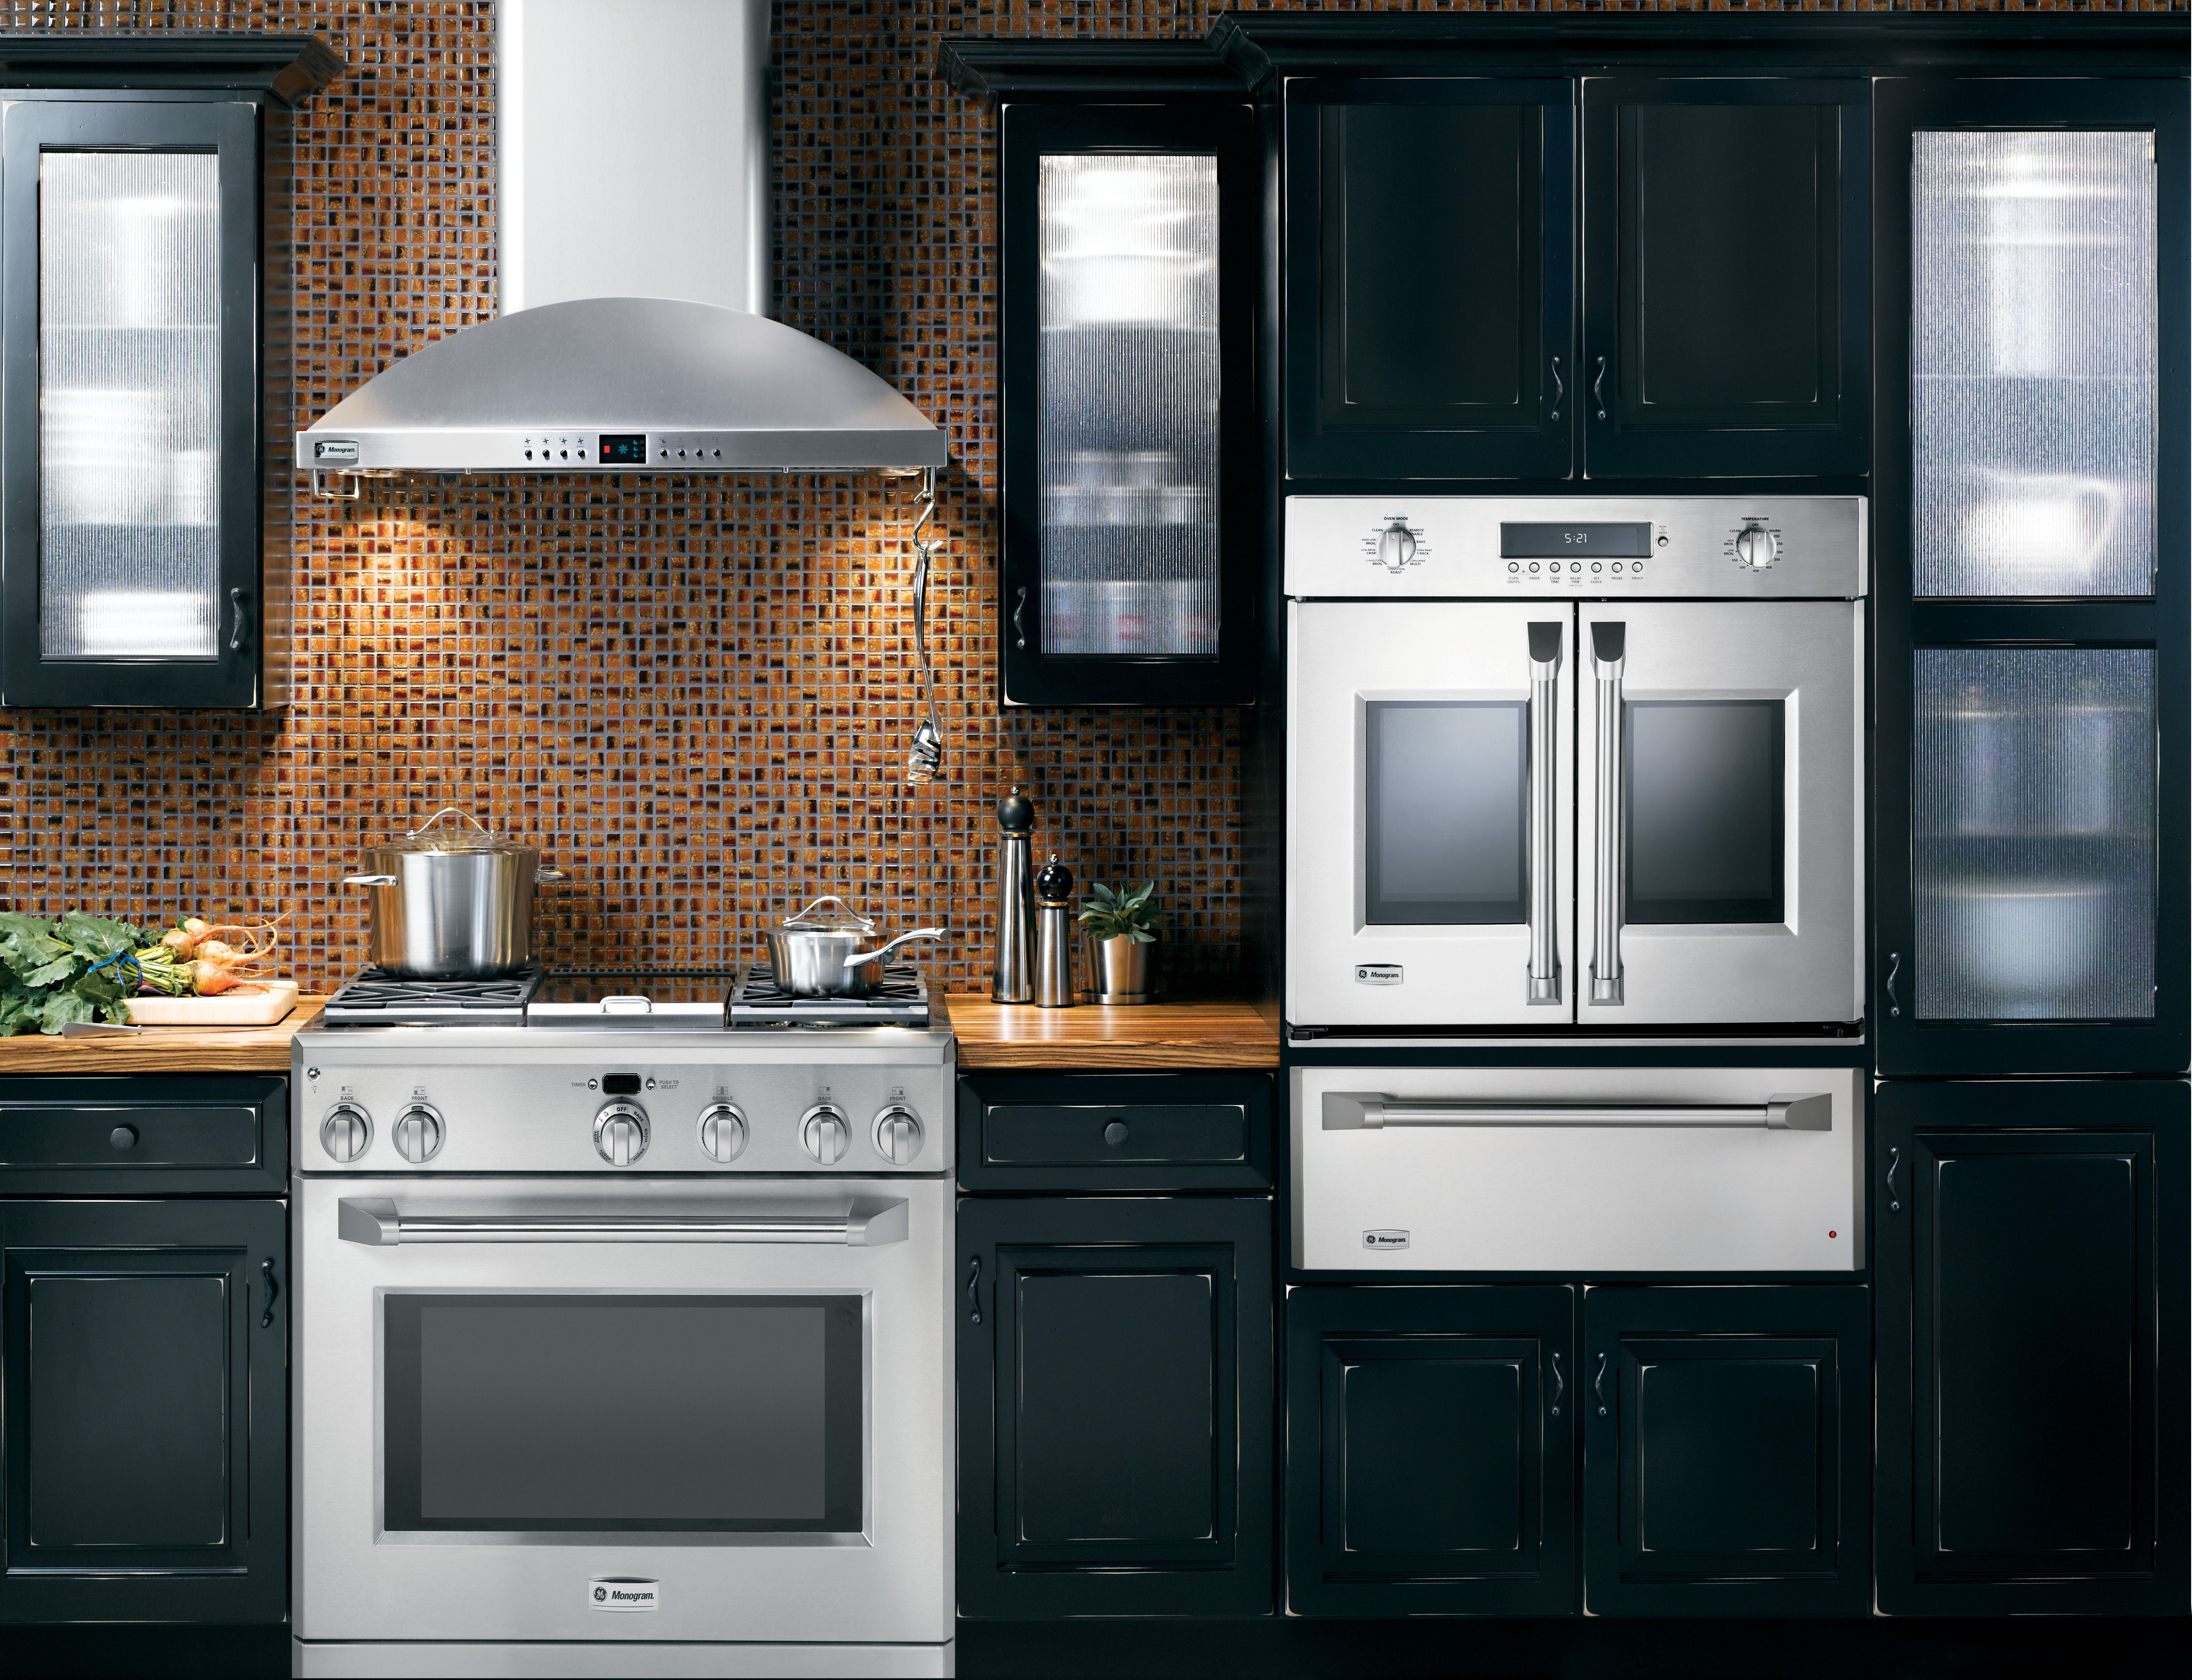 save the usa to appliances cooking today oven kitchen up us lg on